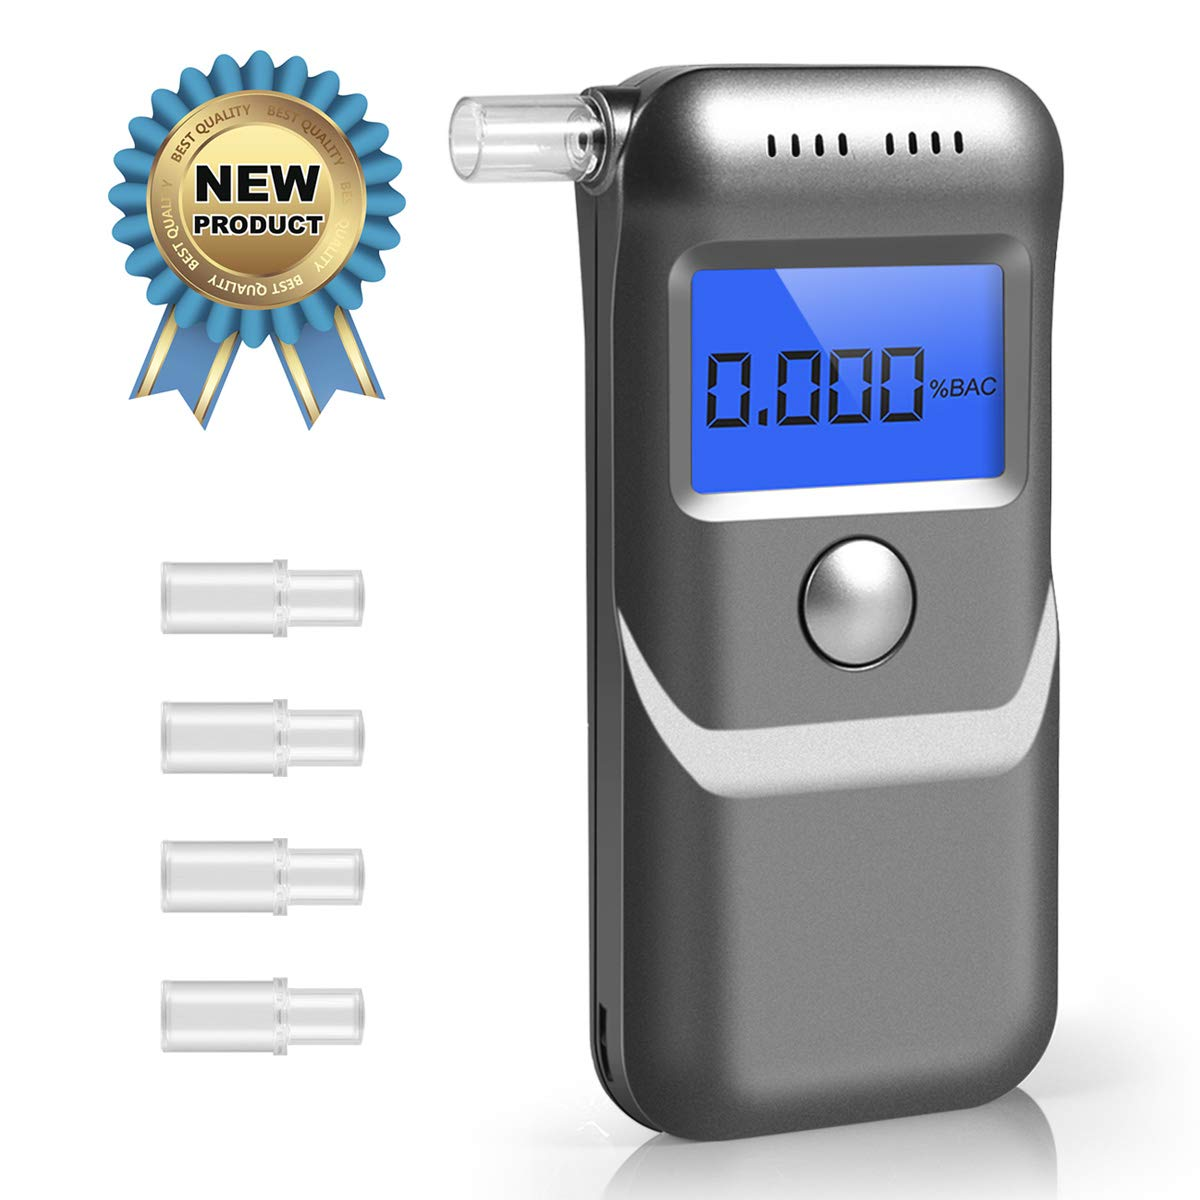 Breathalyzer, Professional Breath Alcohol Tester, Portable Digital Alcohol Detector LCD Screen with 5 Mouthpieces, Auto Power Off and Sound Alarm - Sliver Upgrade